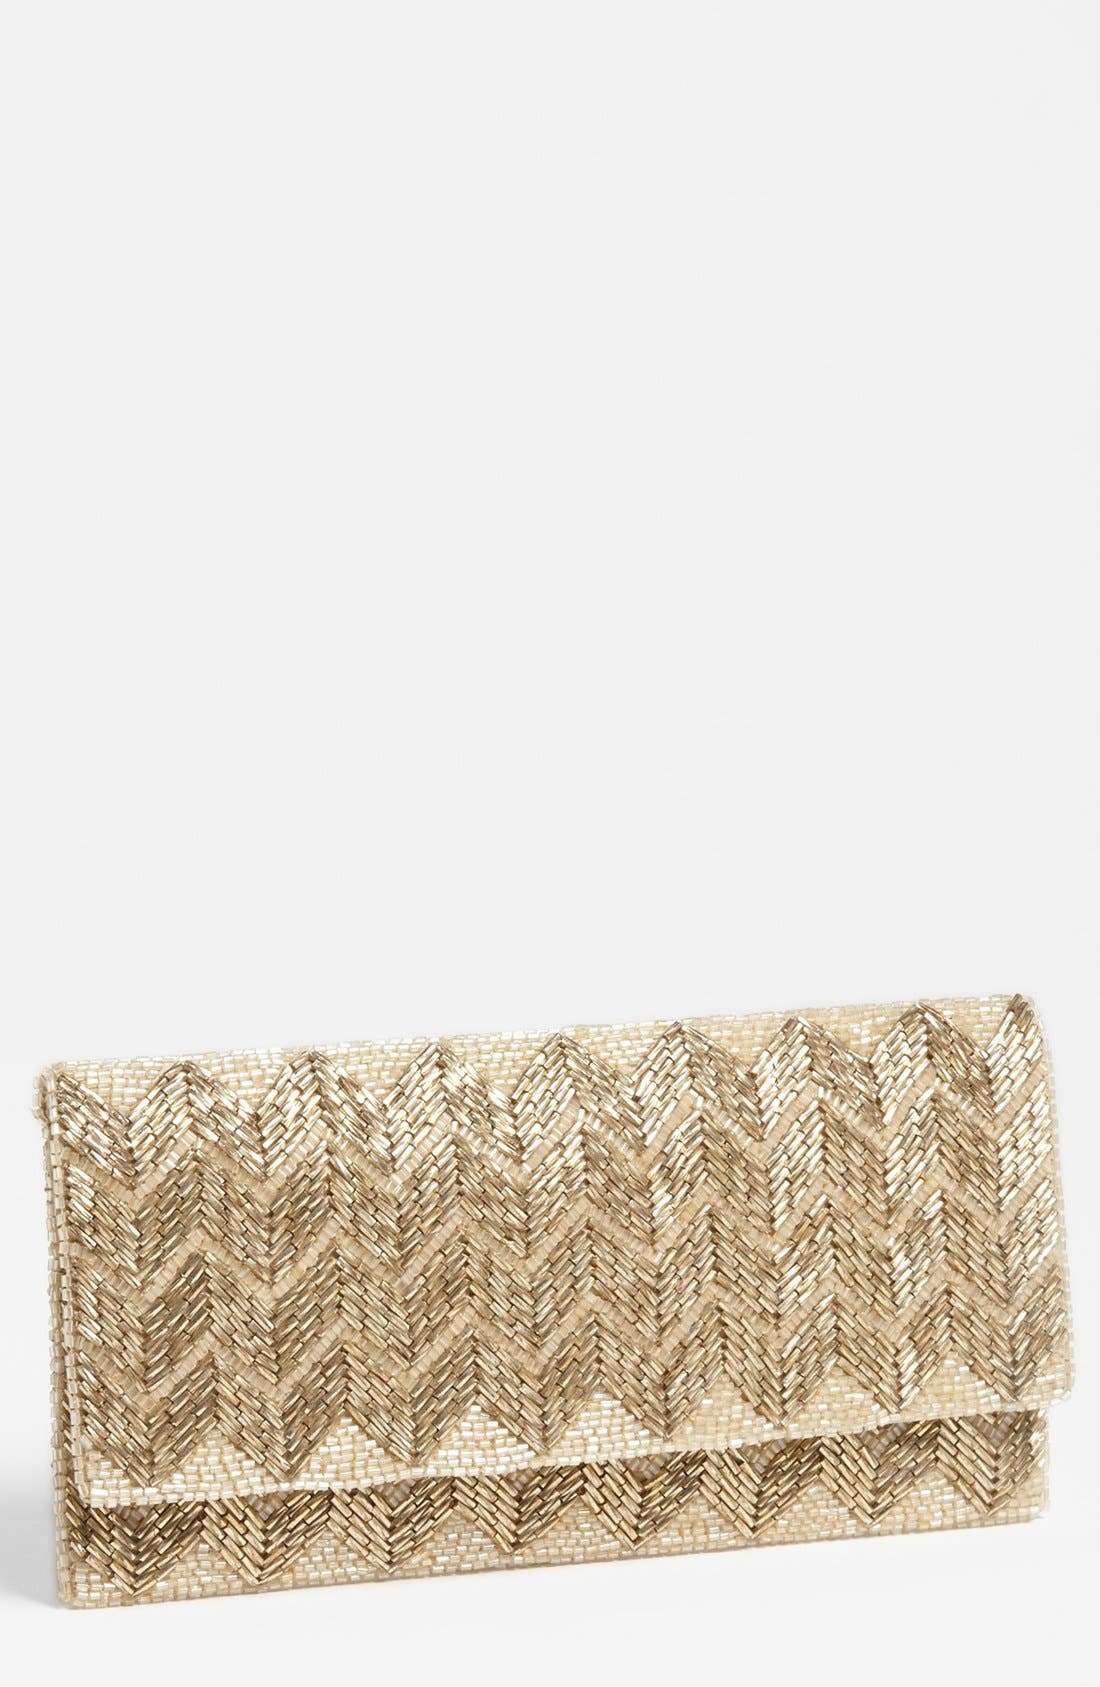 Alternate Image 1 Selected - Glint 'Zigzag' Beaded Foldover Clutch